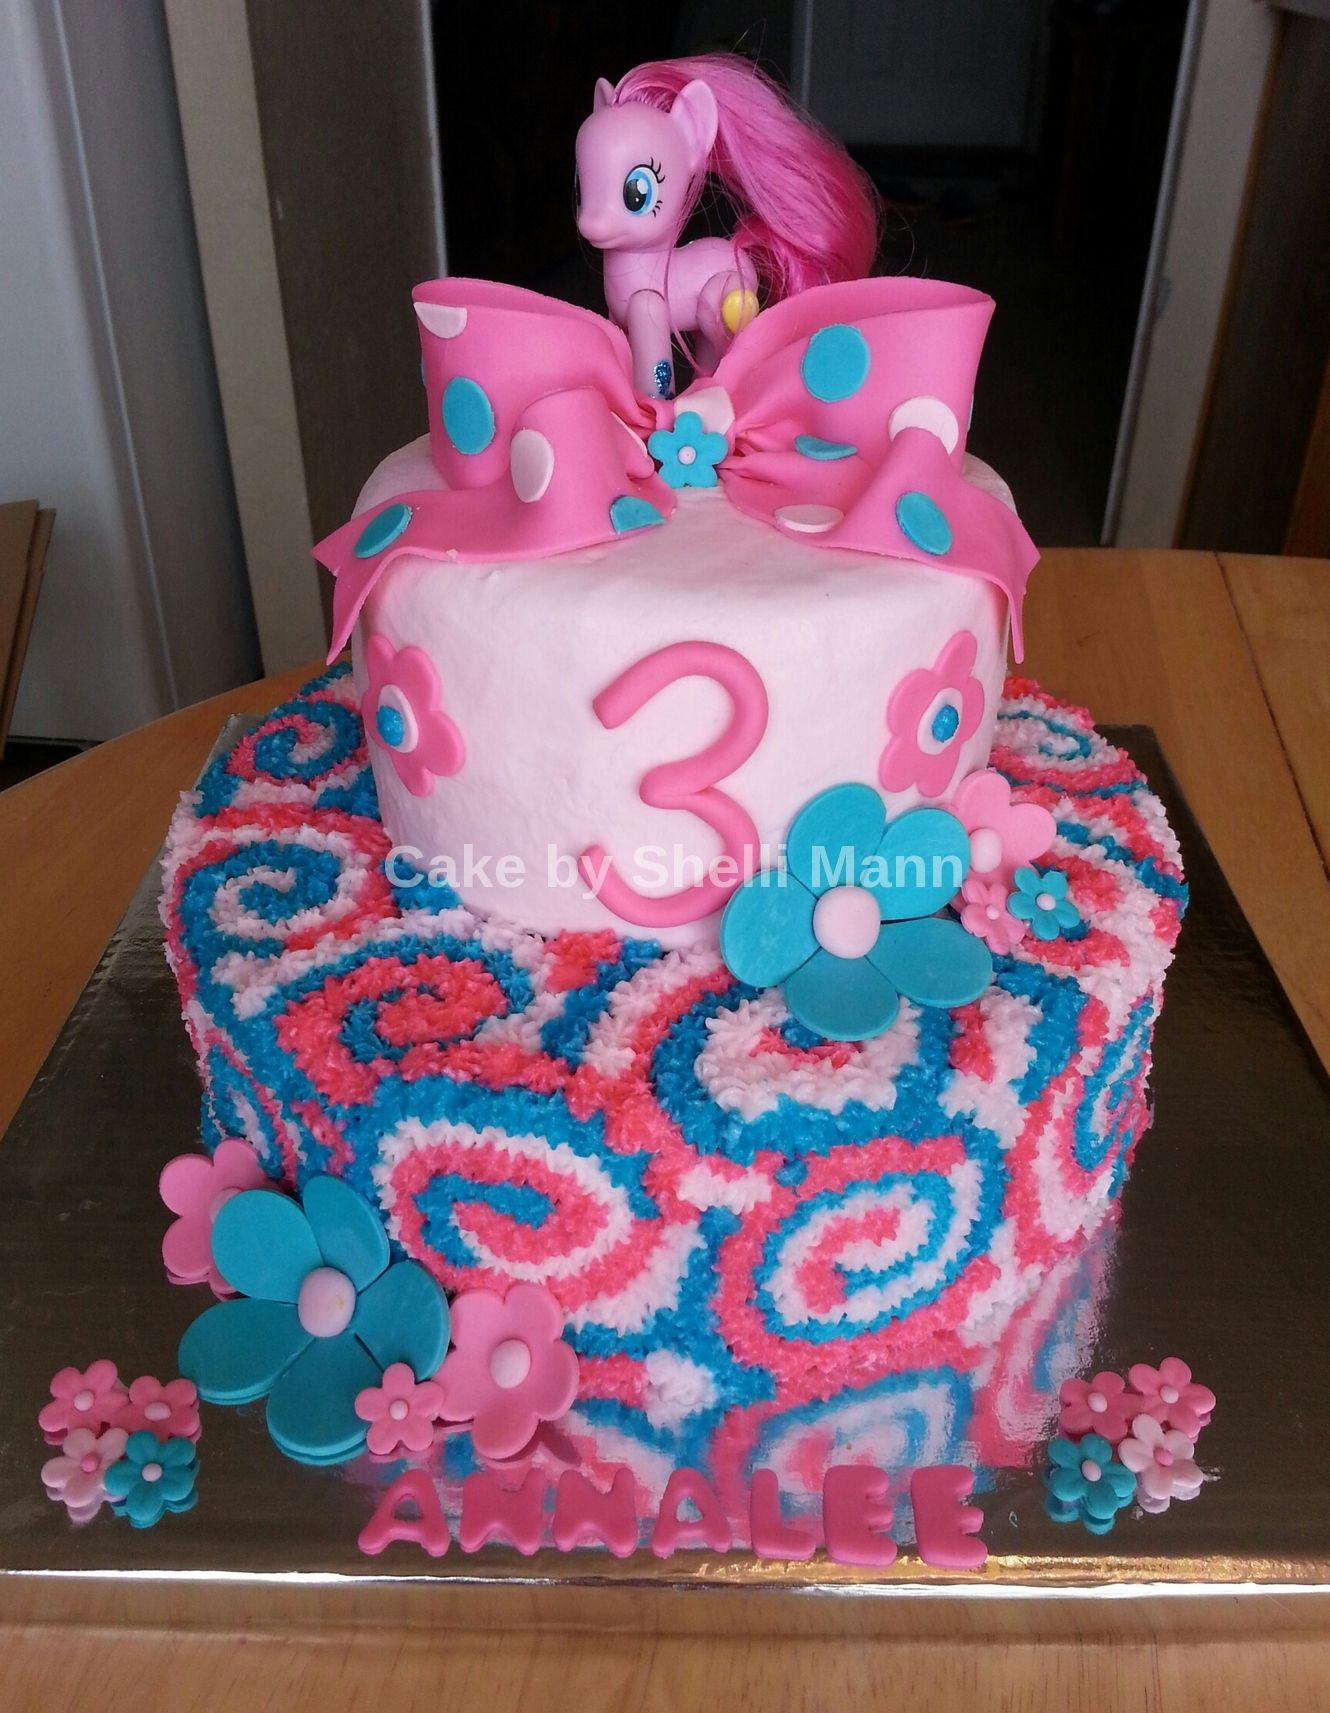 My little pony cake Buttercream icing with fondant bow and